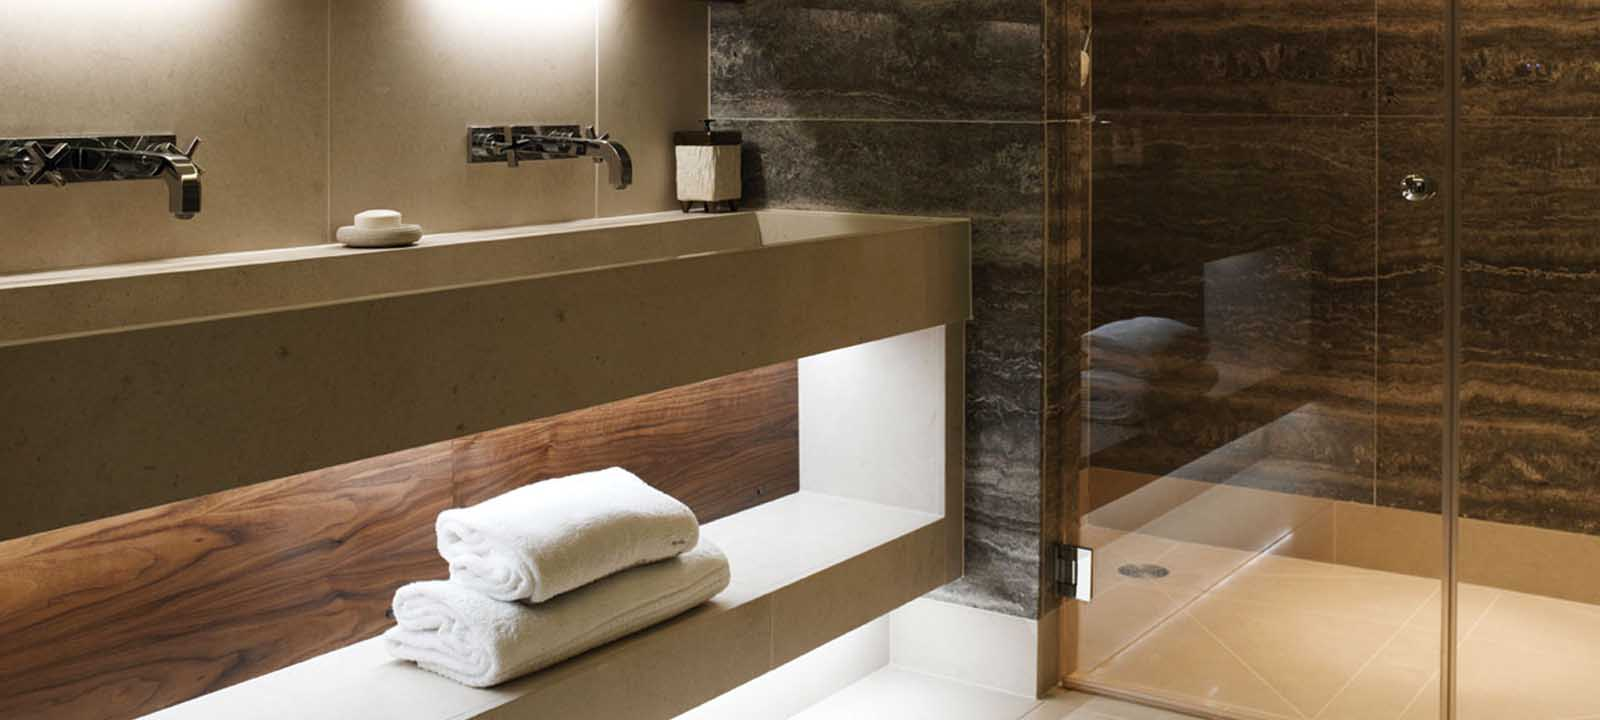 inspirationbathroommodernmain1